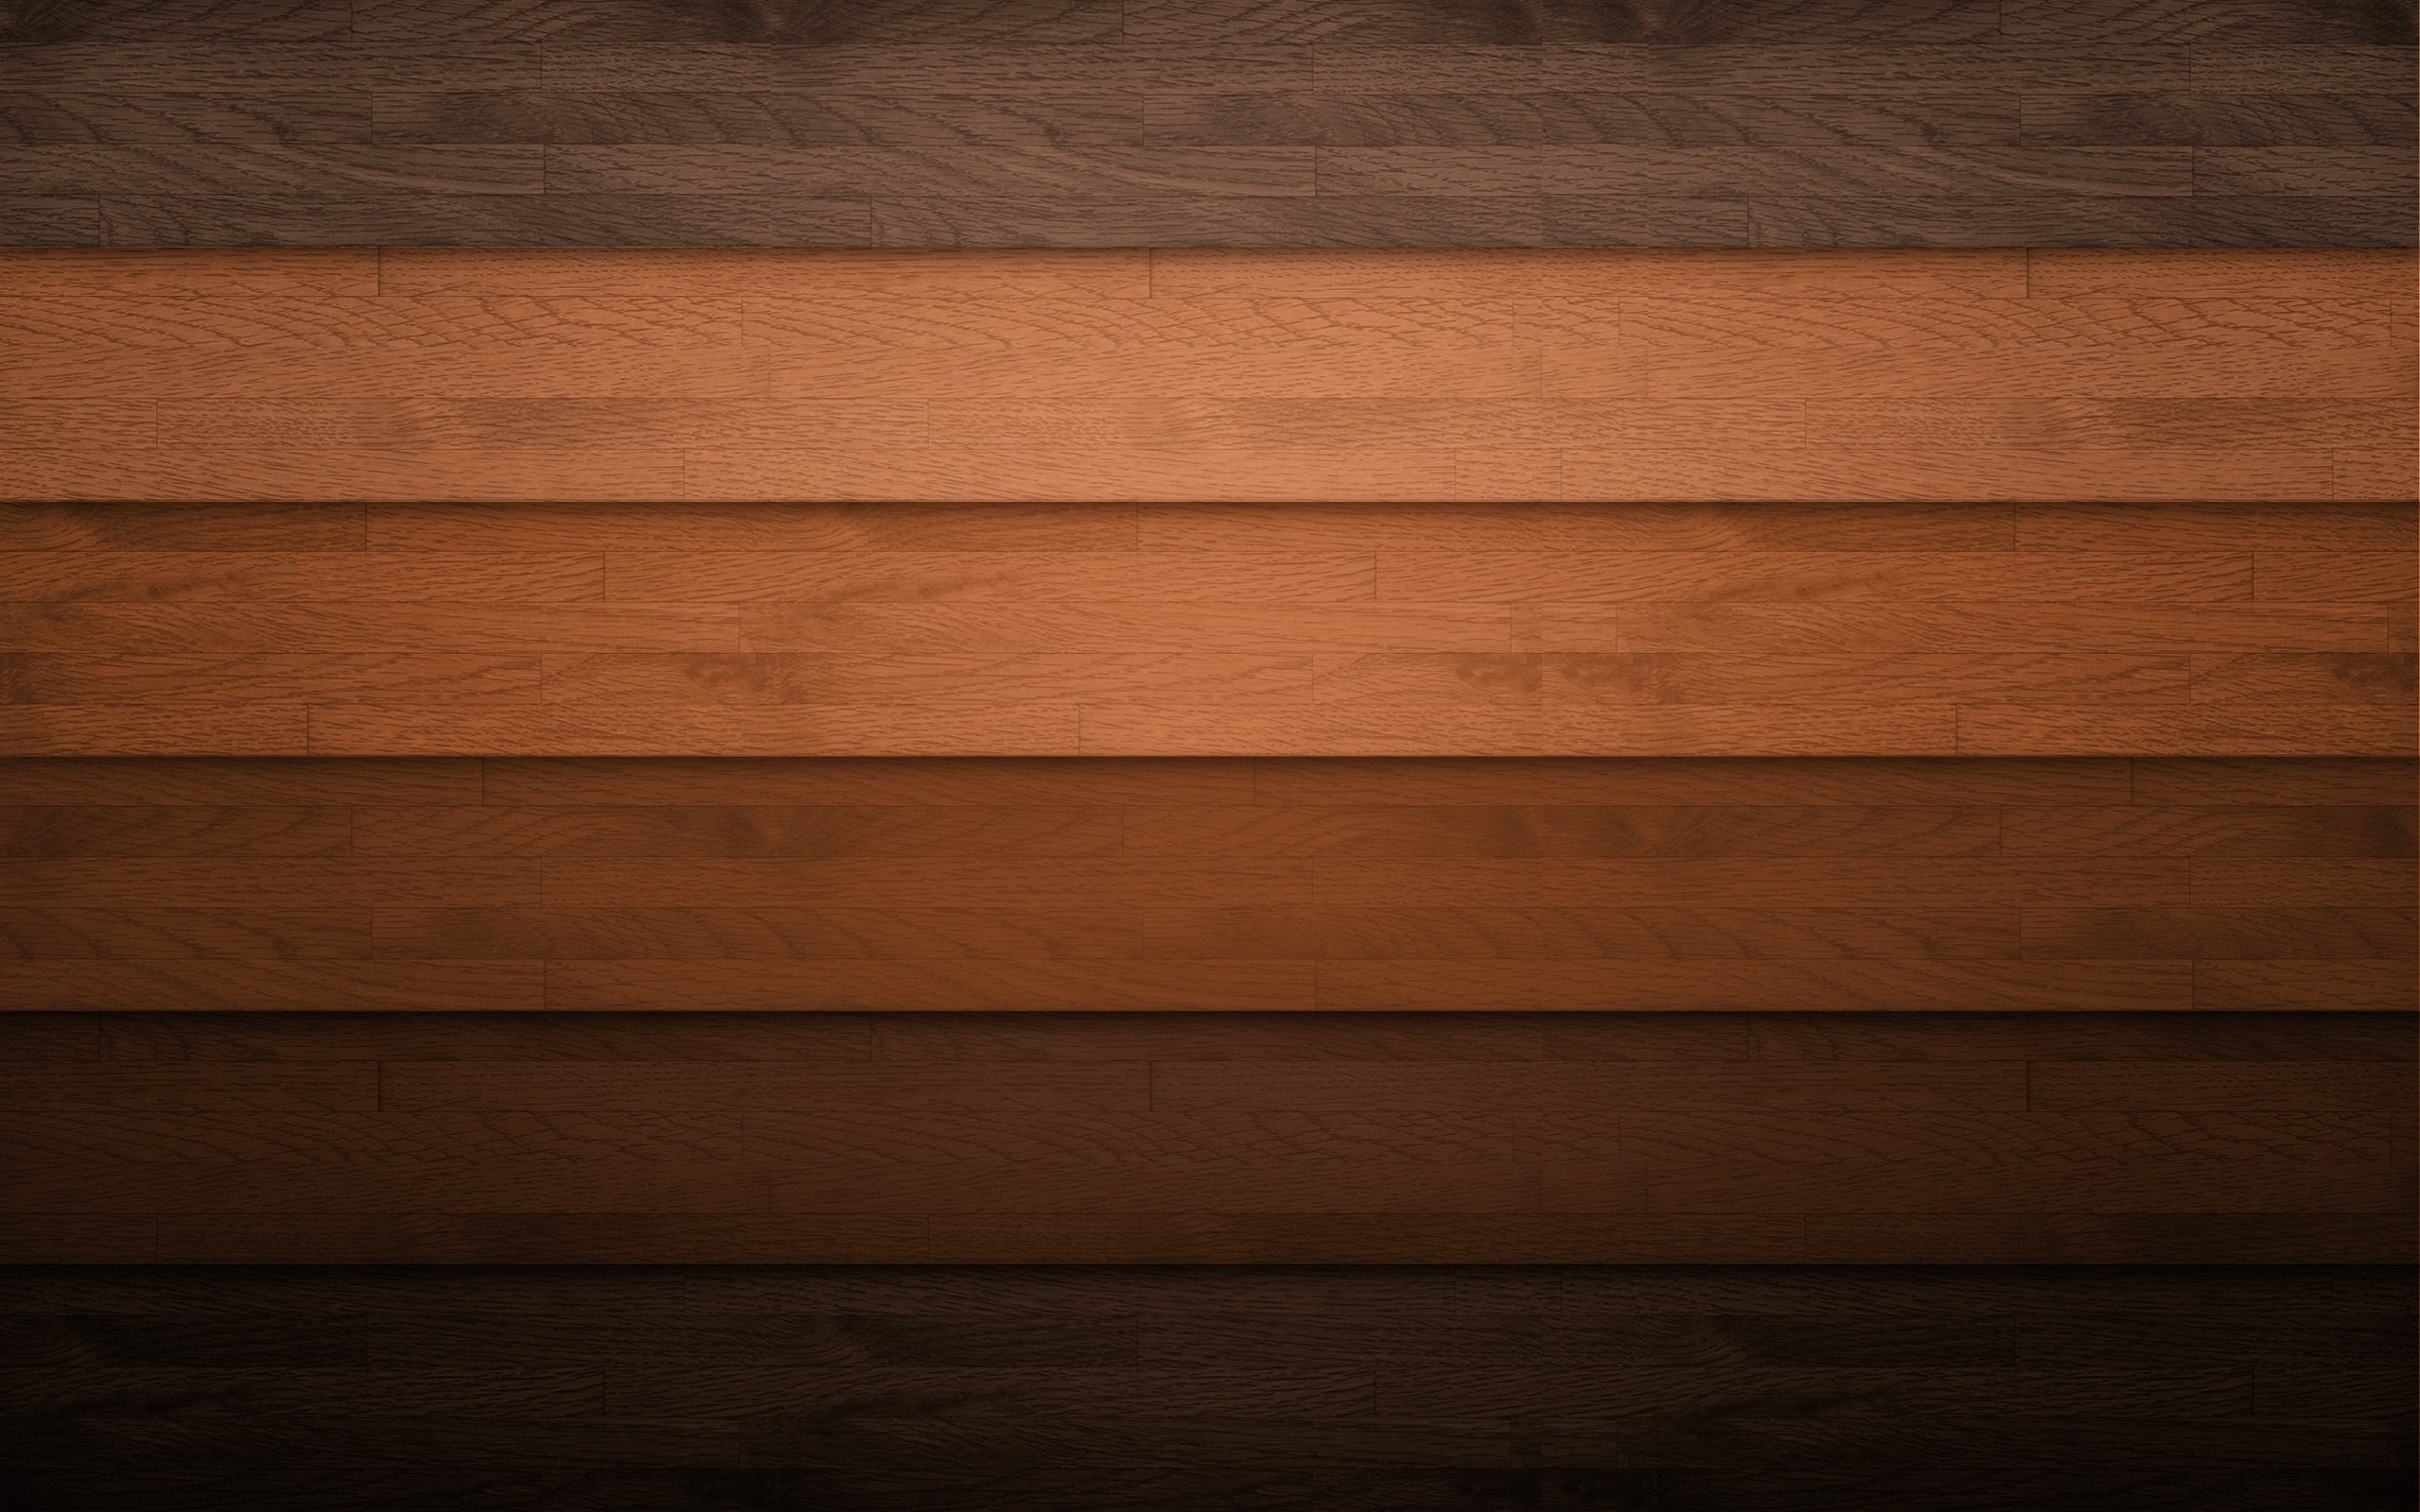 2560x1600 Explore Brown Wallpaper, Wood Wallpaper, and more!